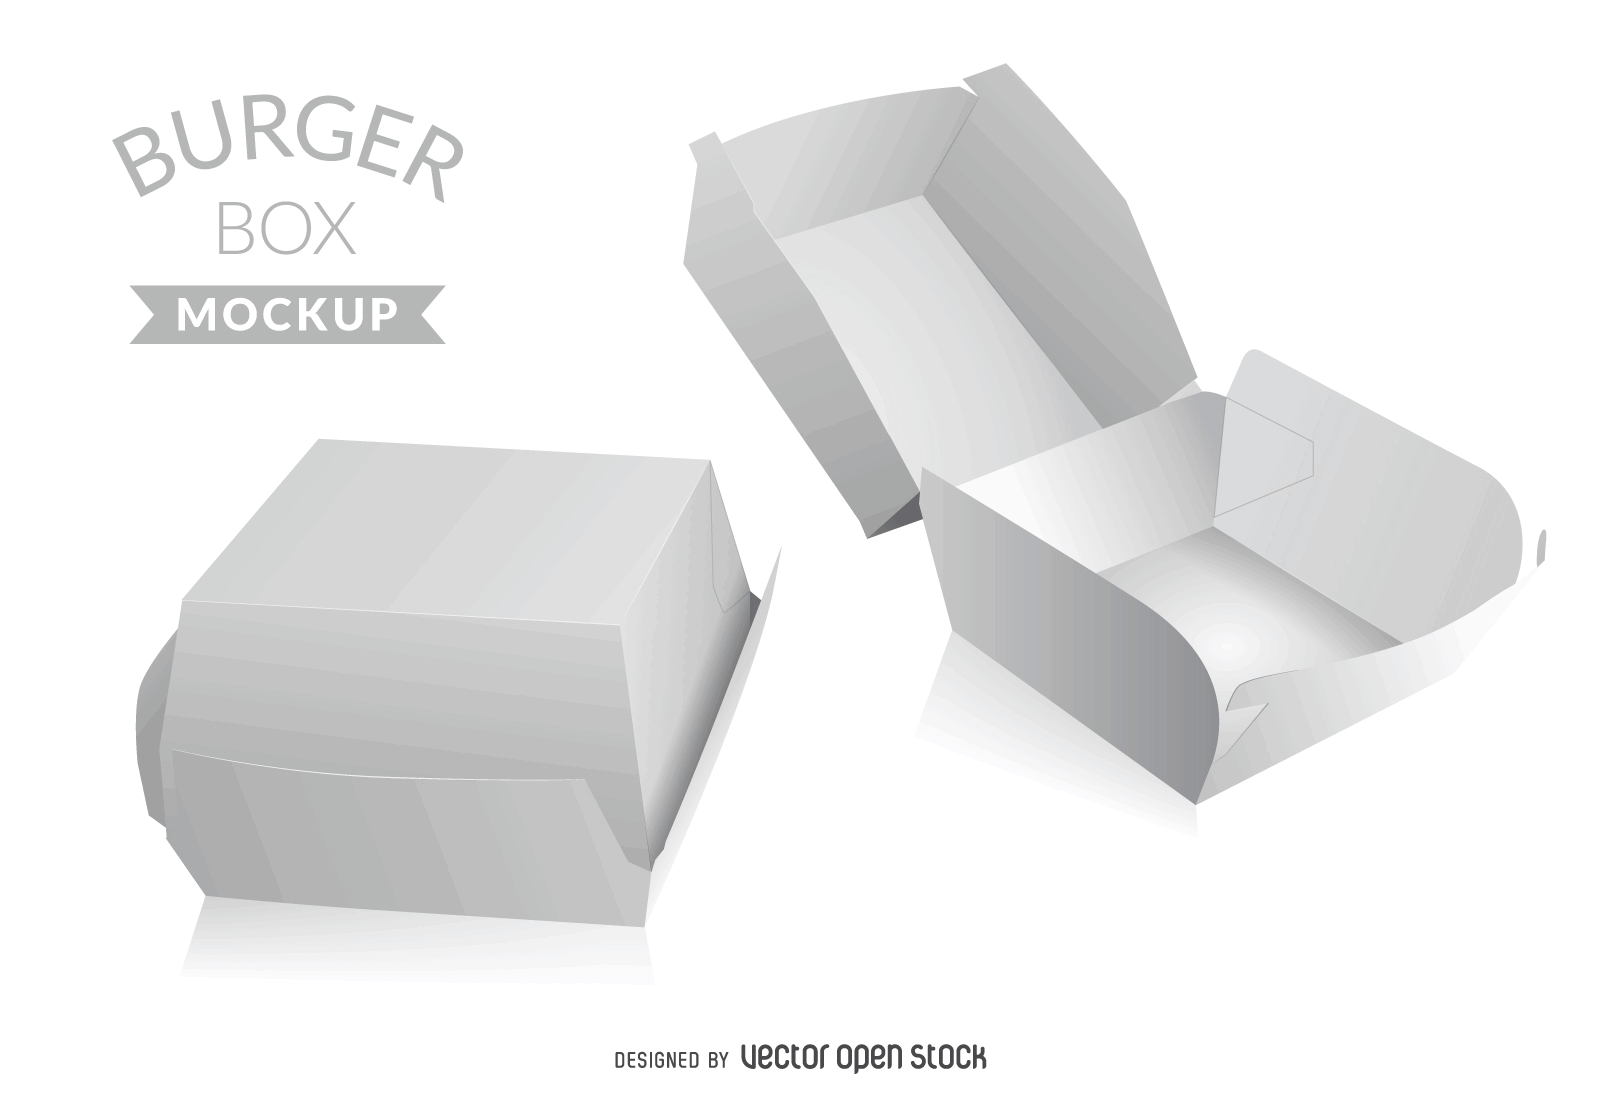 Fast Food Box Mockup In White Simple Burger Box Use The